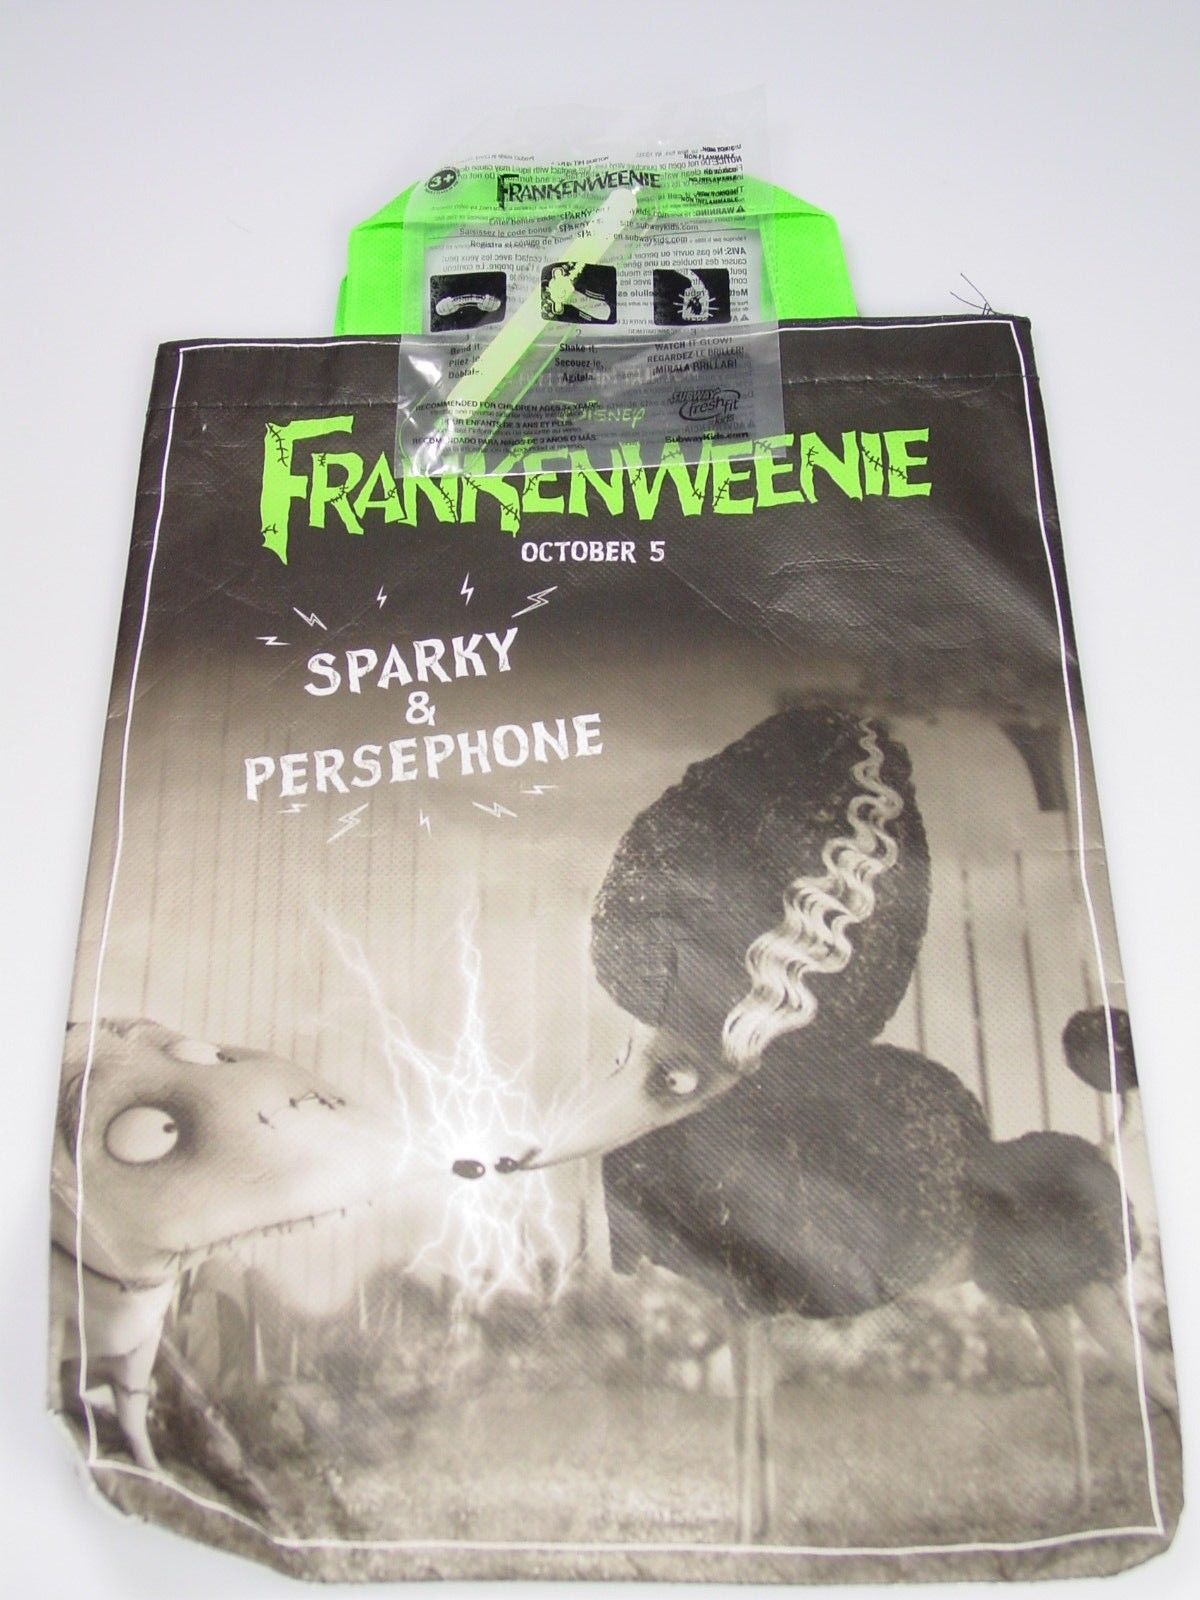 Disney FRANKENWEENIE Persephone Sparky Tim Burton Halloween treat bag subway